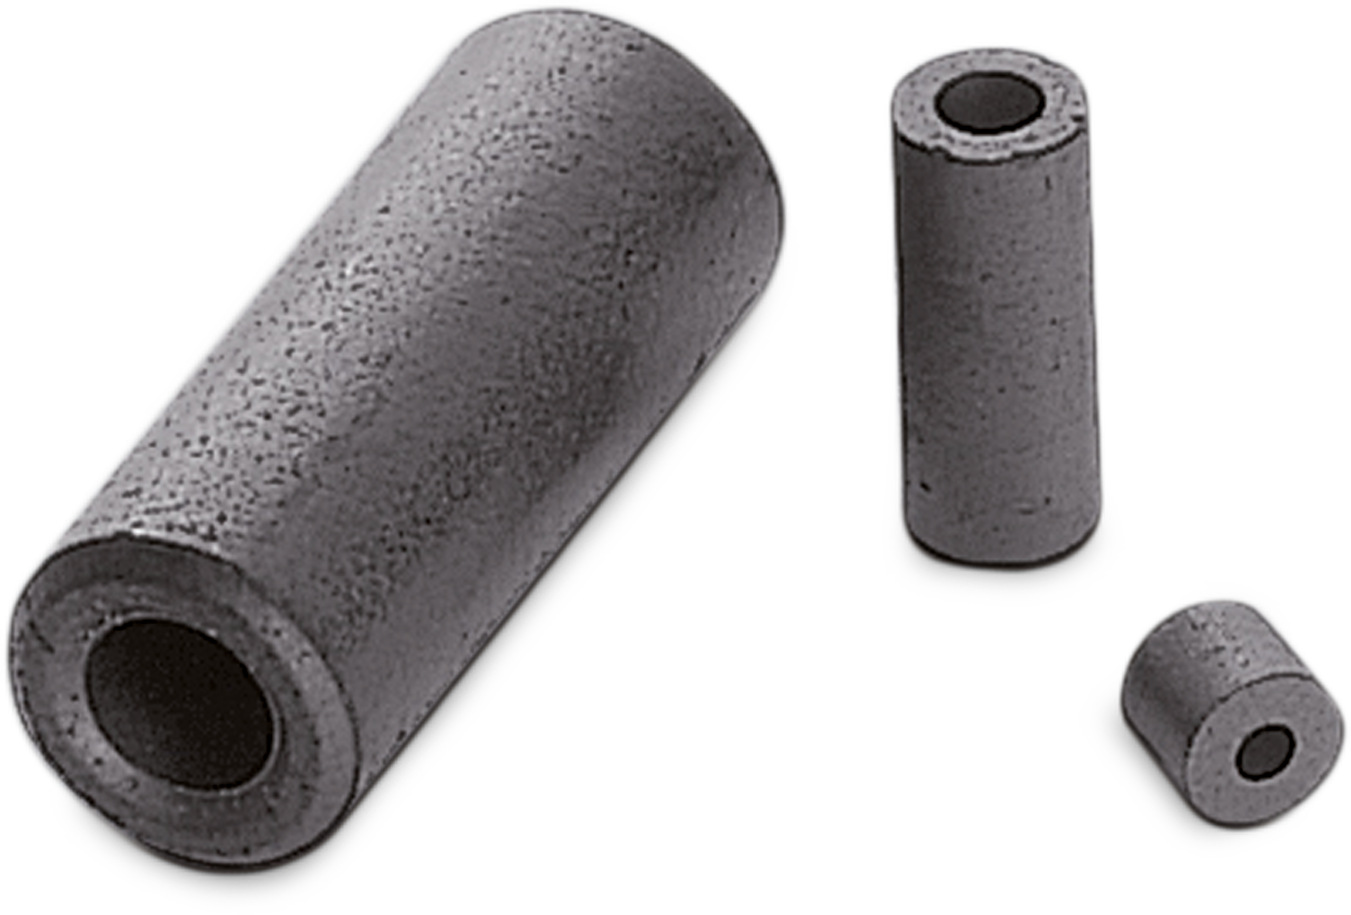 WE-SAFB Small Size EMI Suppression Ferrite Bead Picture